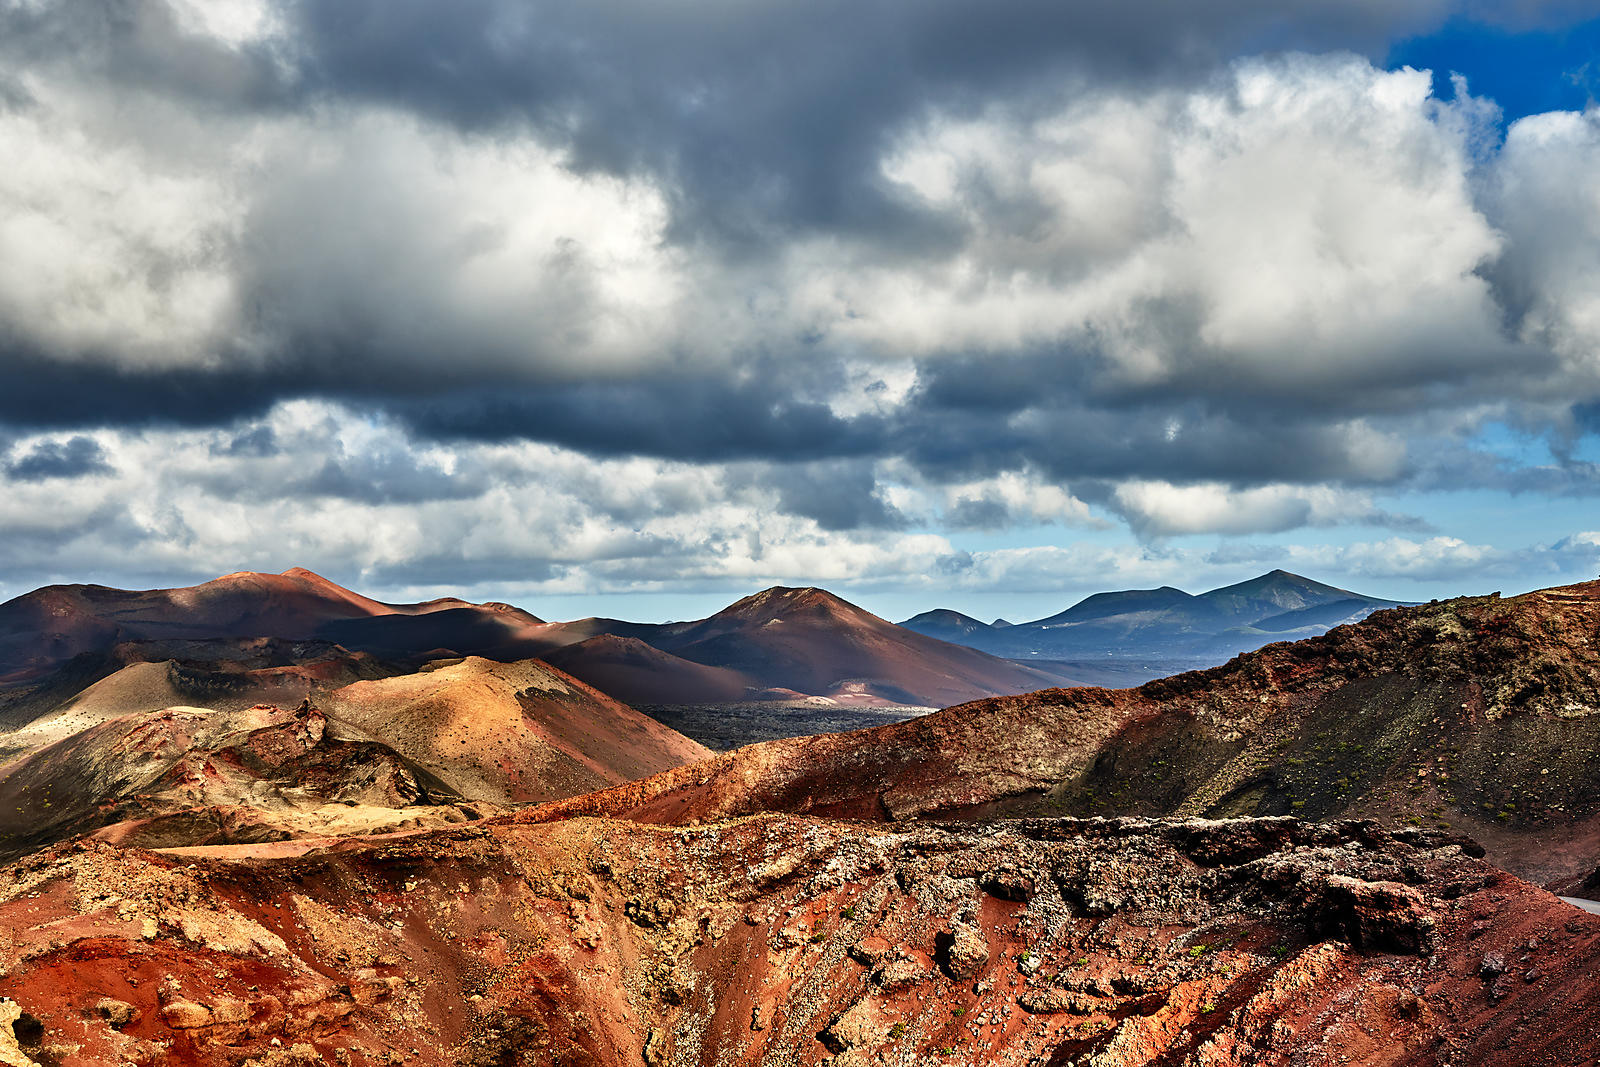 Volcanoes under the clouds in Timanfaya national park, Lanzarote